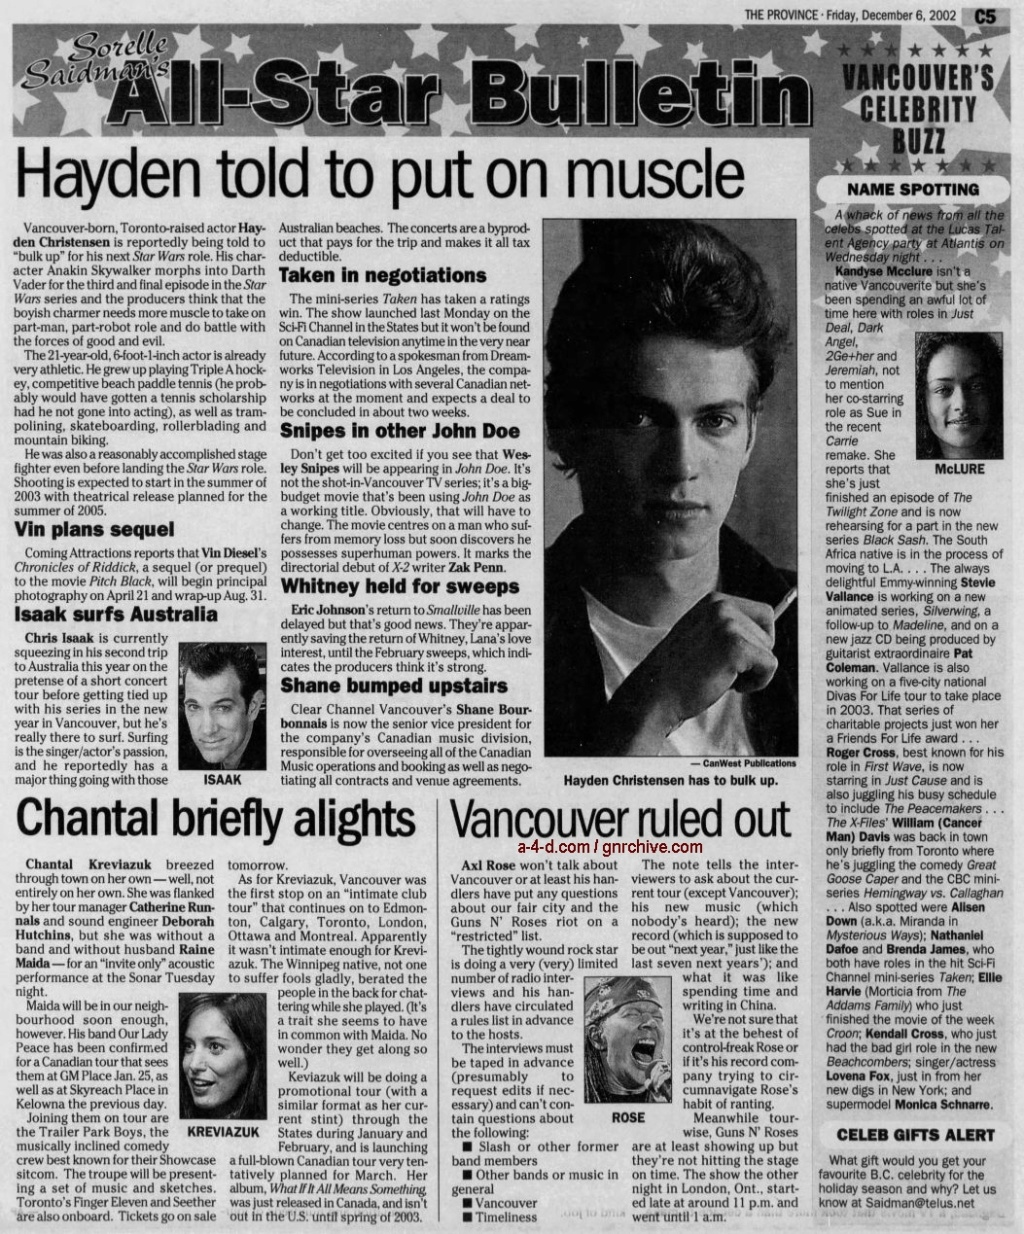 2002.12.06 - The Province - Vancouver Ruled Out 2002_176